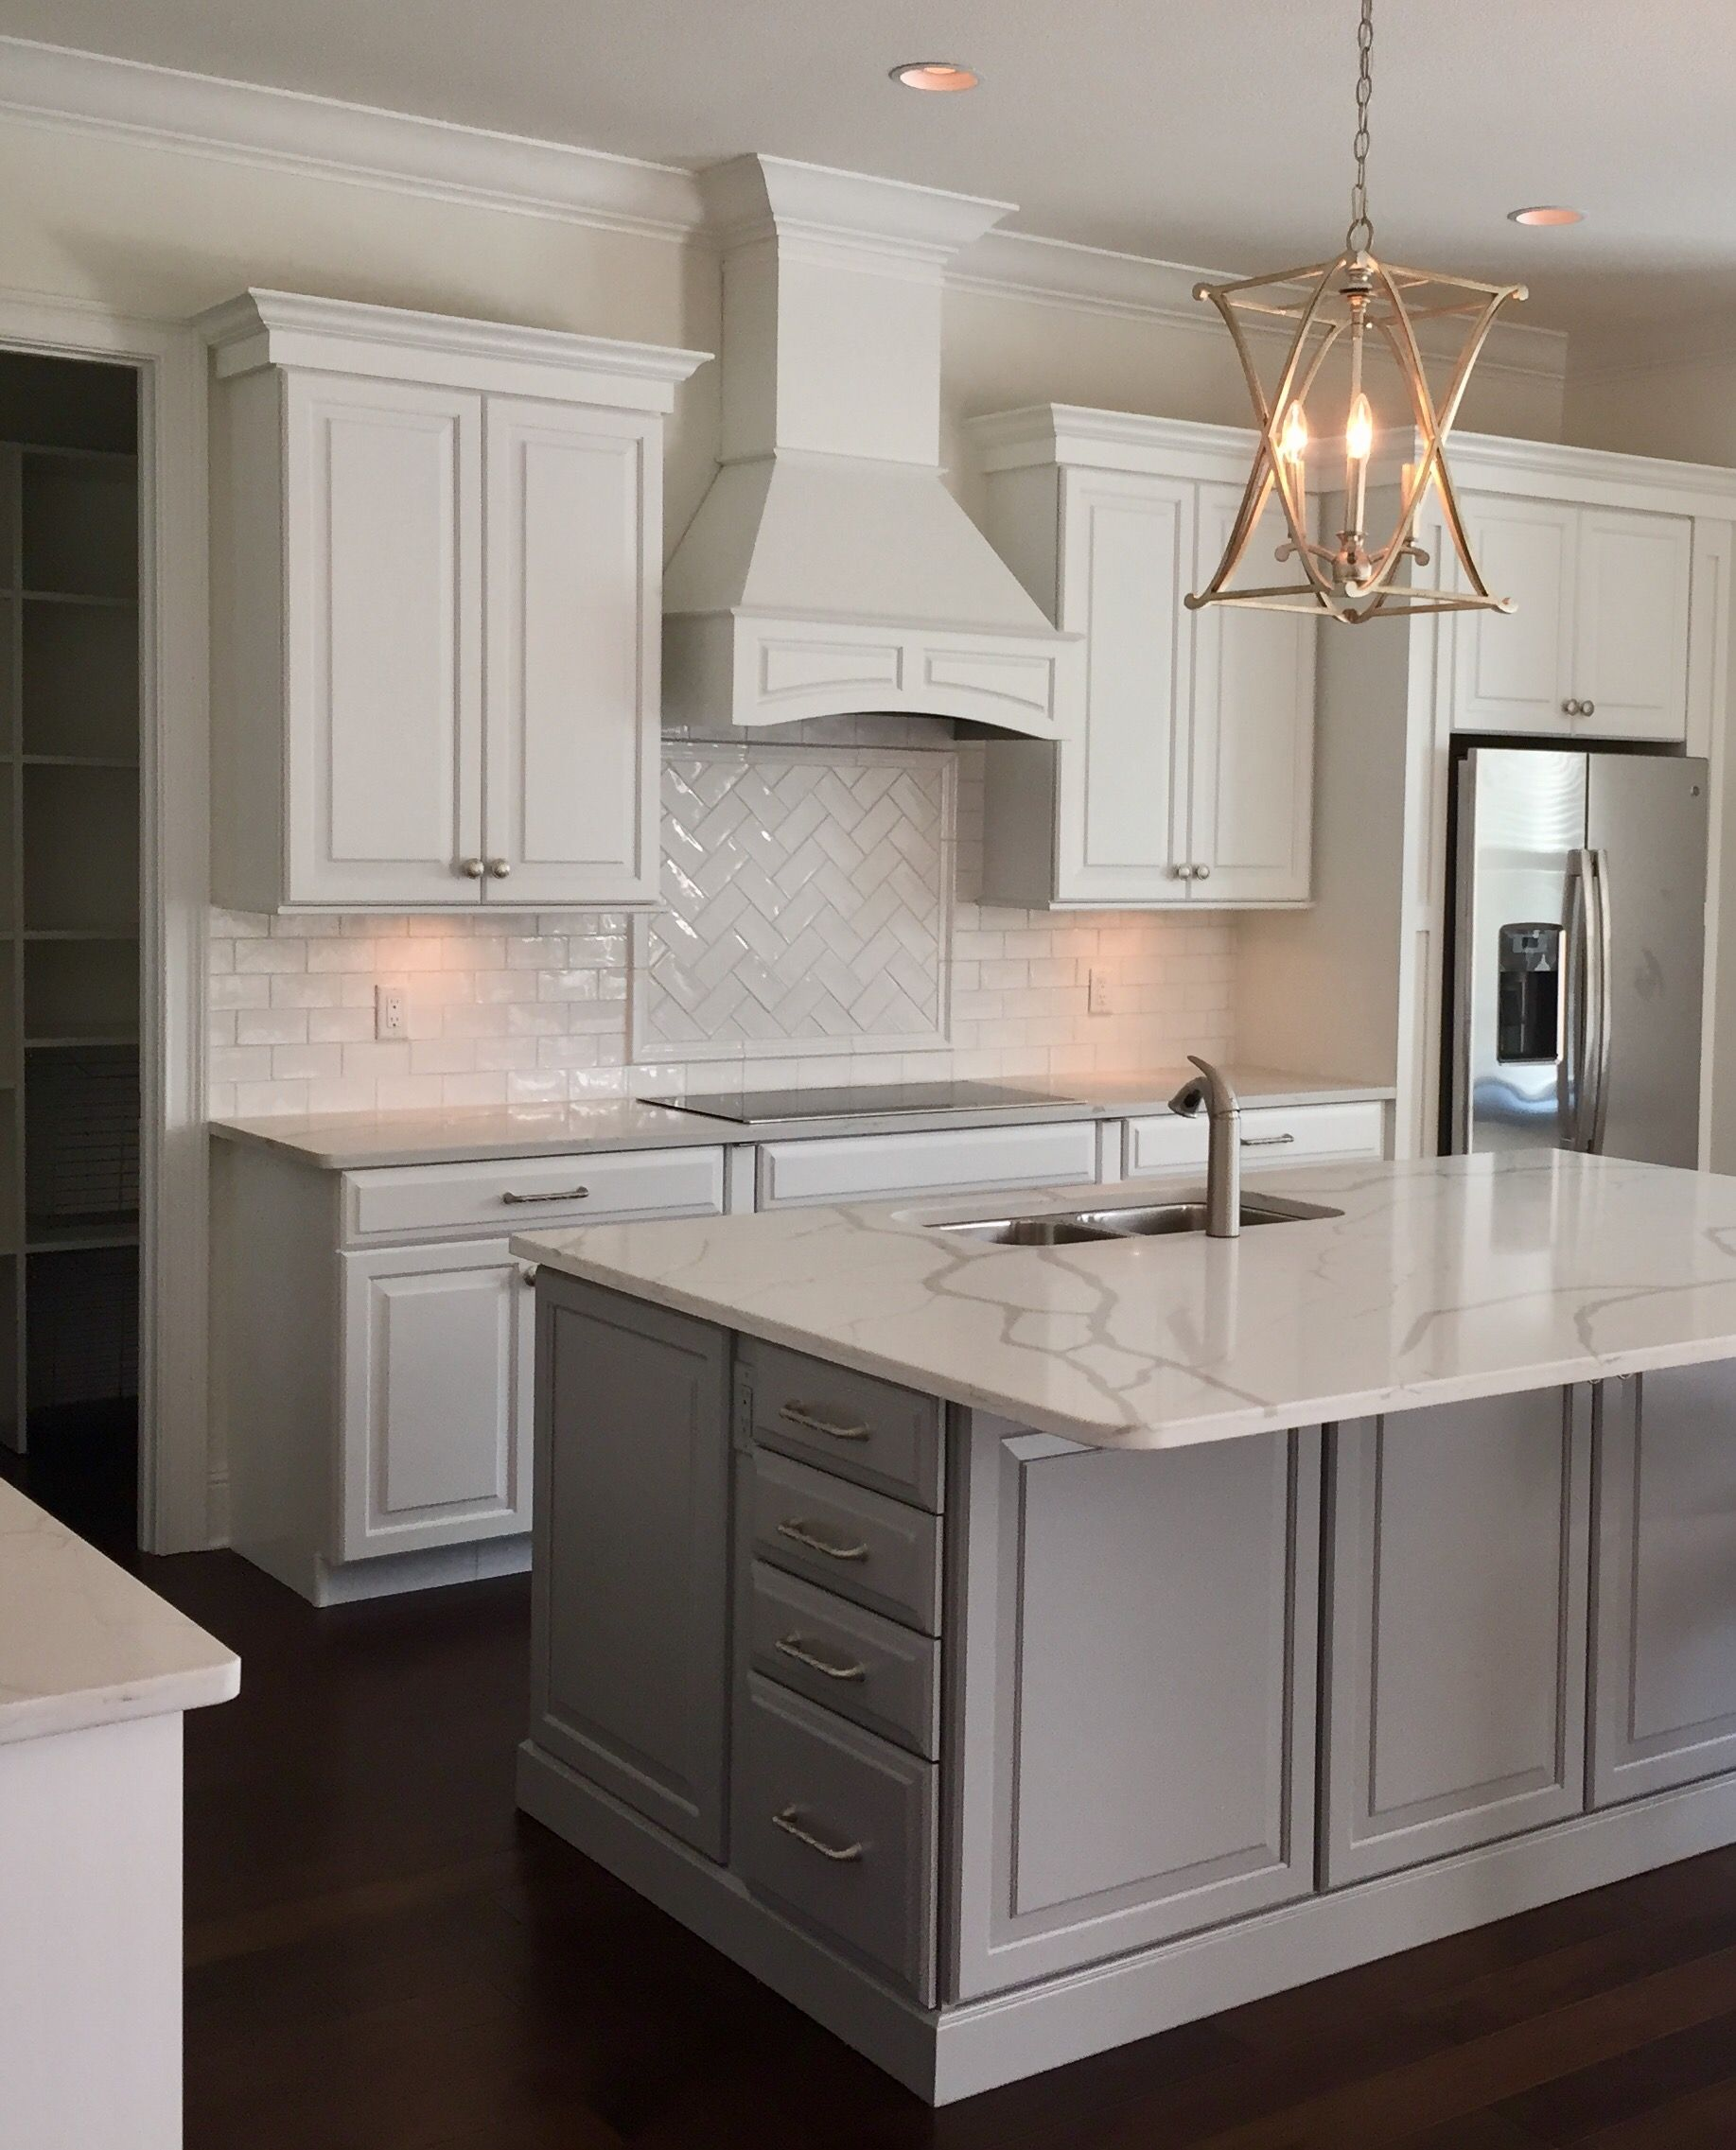 Winter Park Fl Kitchen Grey Kitchen Island Kitchen Cabinets Grey And White White Shaker Cabinets